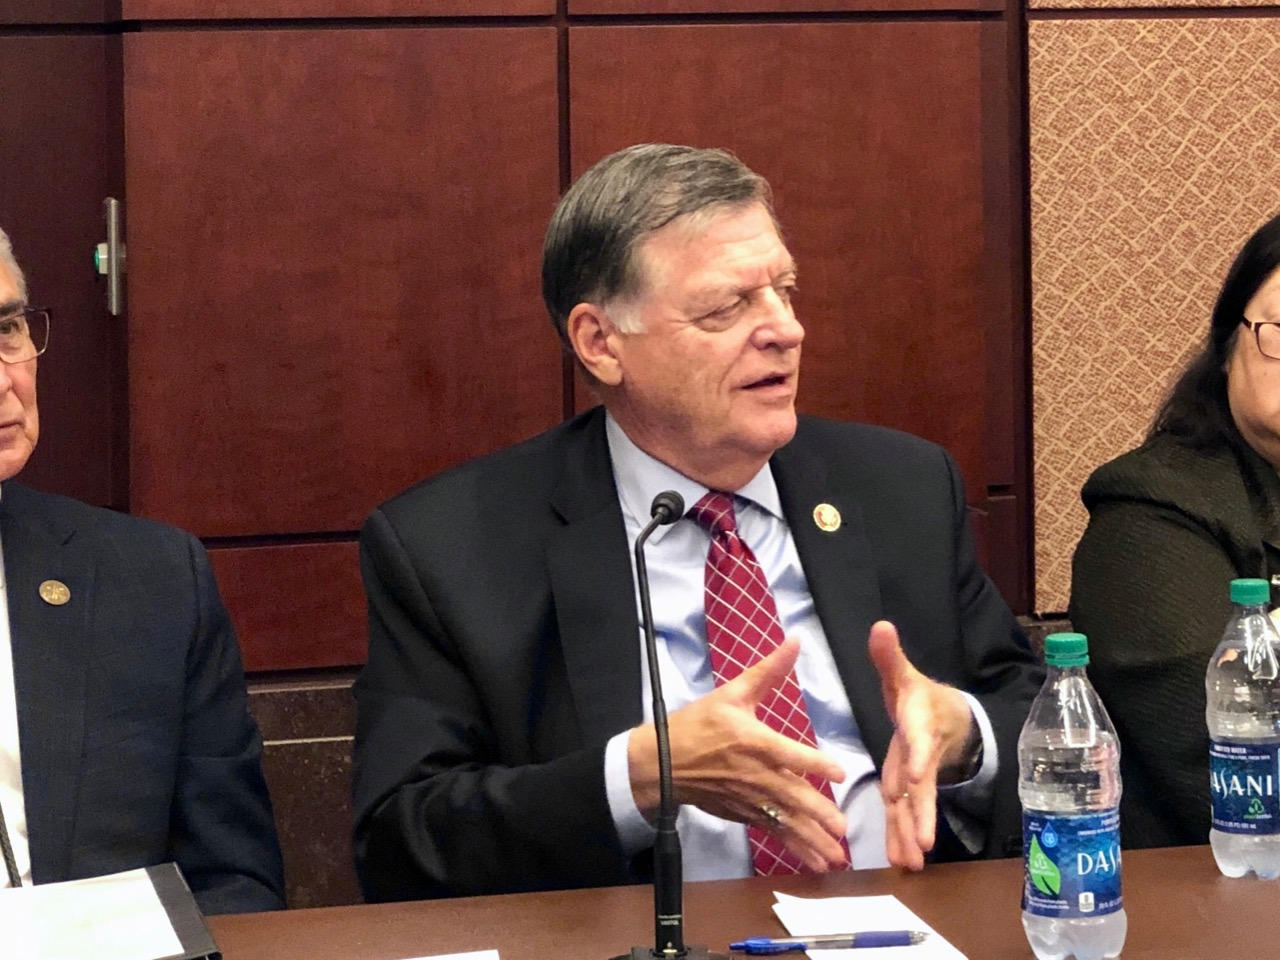 Rep. Tom Cole: Democrats waste an entire year in Congress